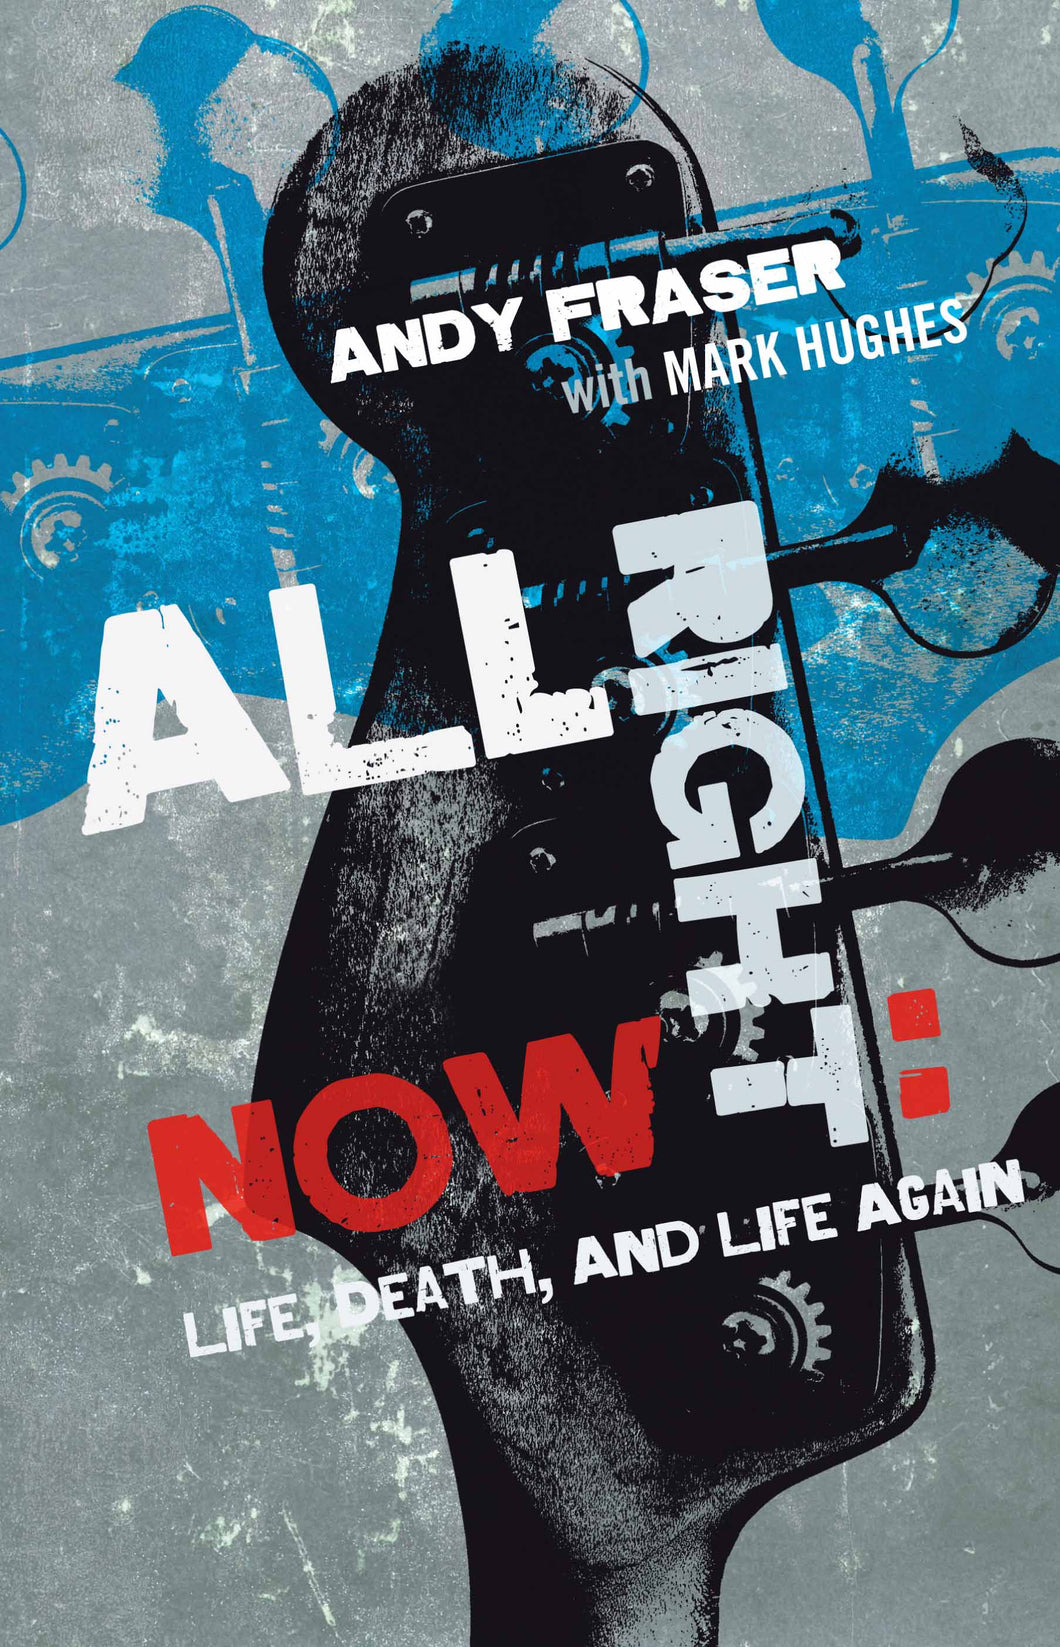 All Right Now by Andy Fraser, Foruli Codex, ISBN 9781905792627, front cover